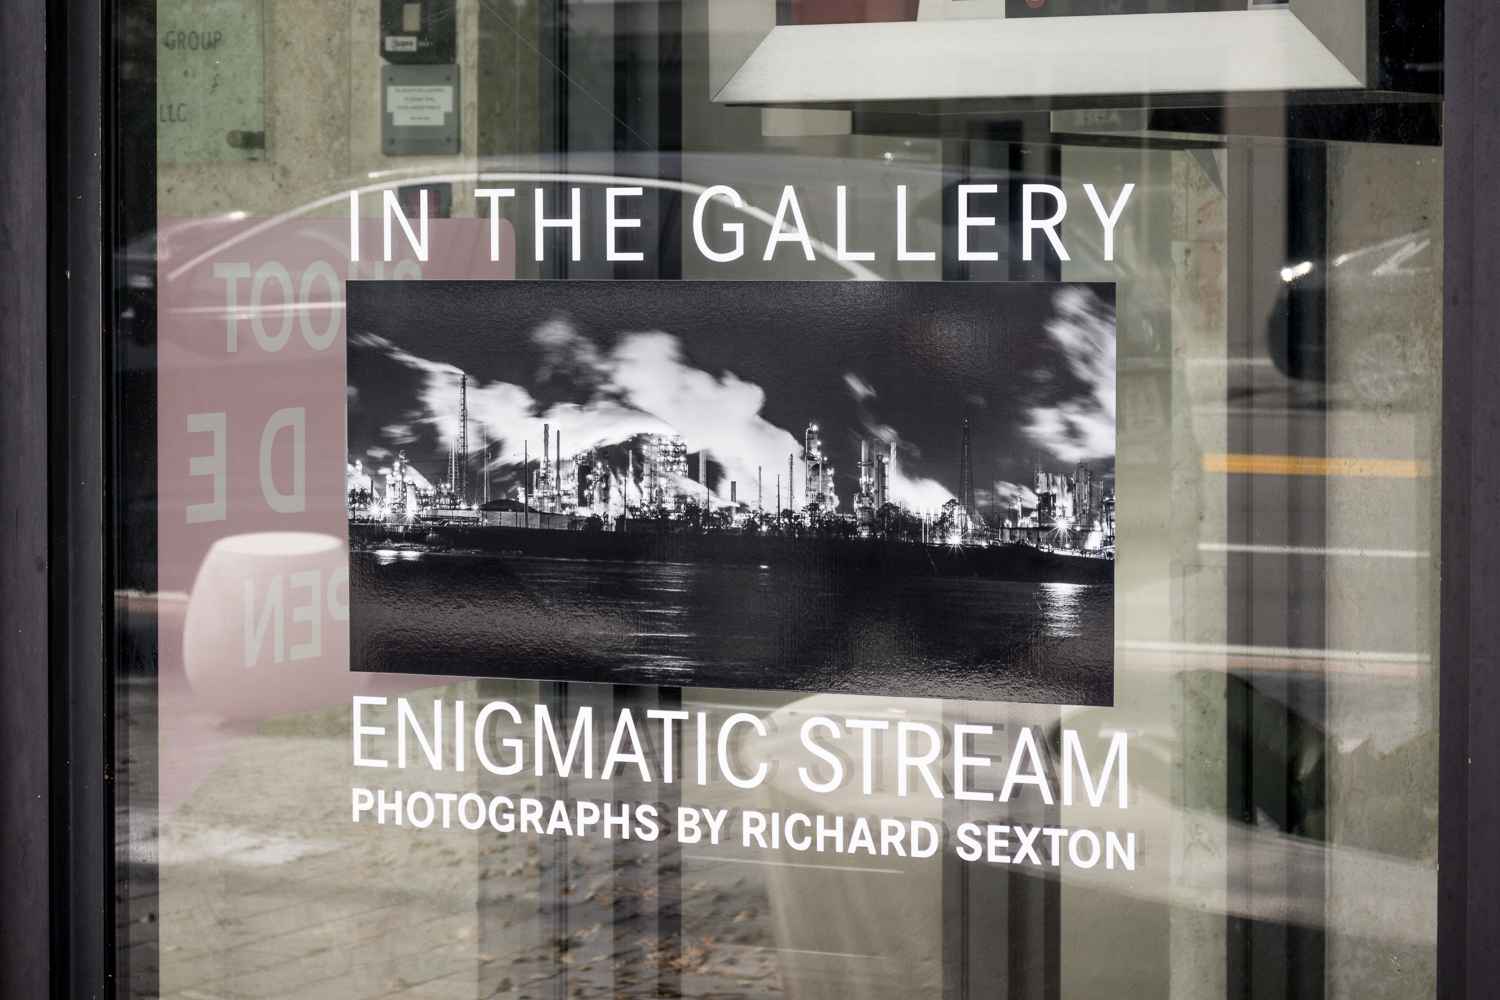 Enigmatic Stream exhibit installation, Leica Store Miami